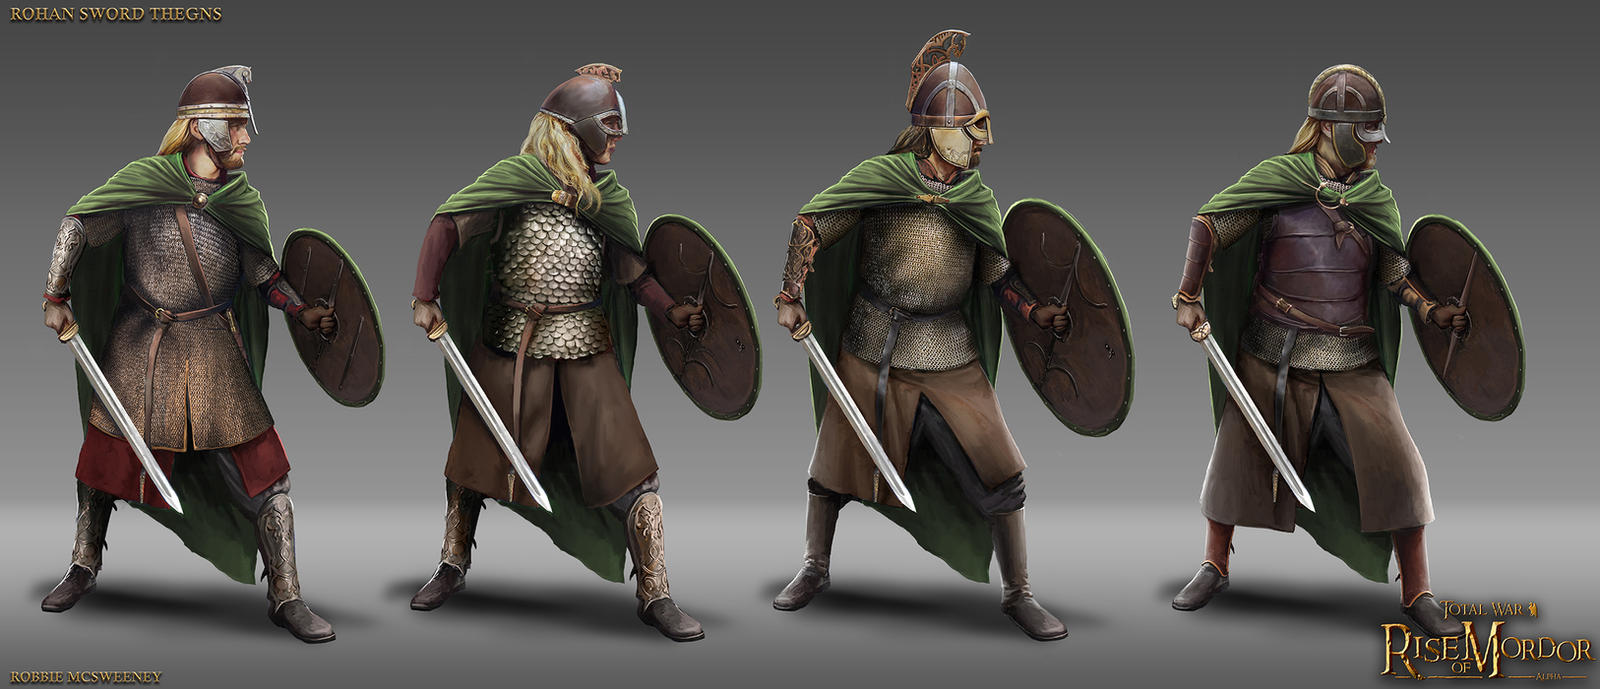 Rohan sword thegns by robbiemcsweeney on deviantart for Rohan design